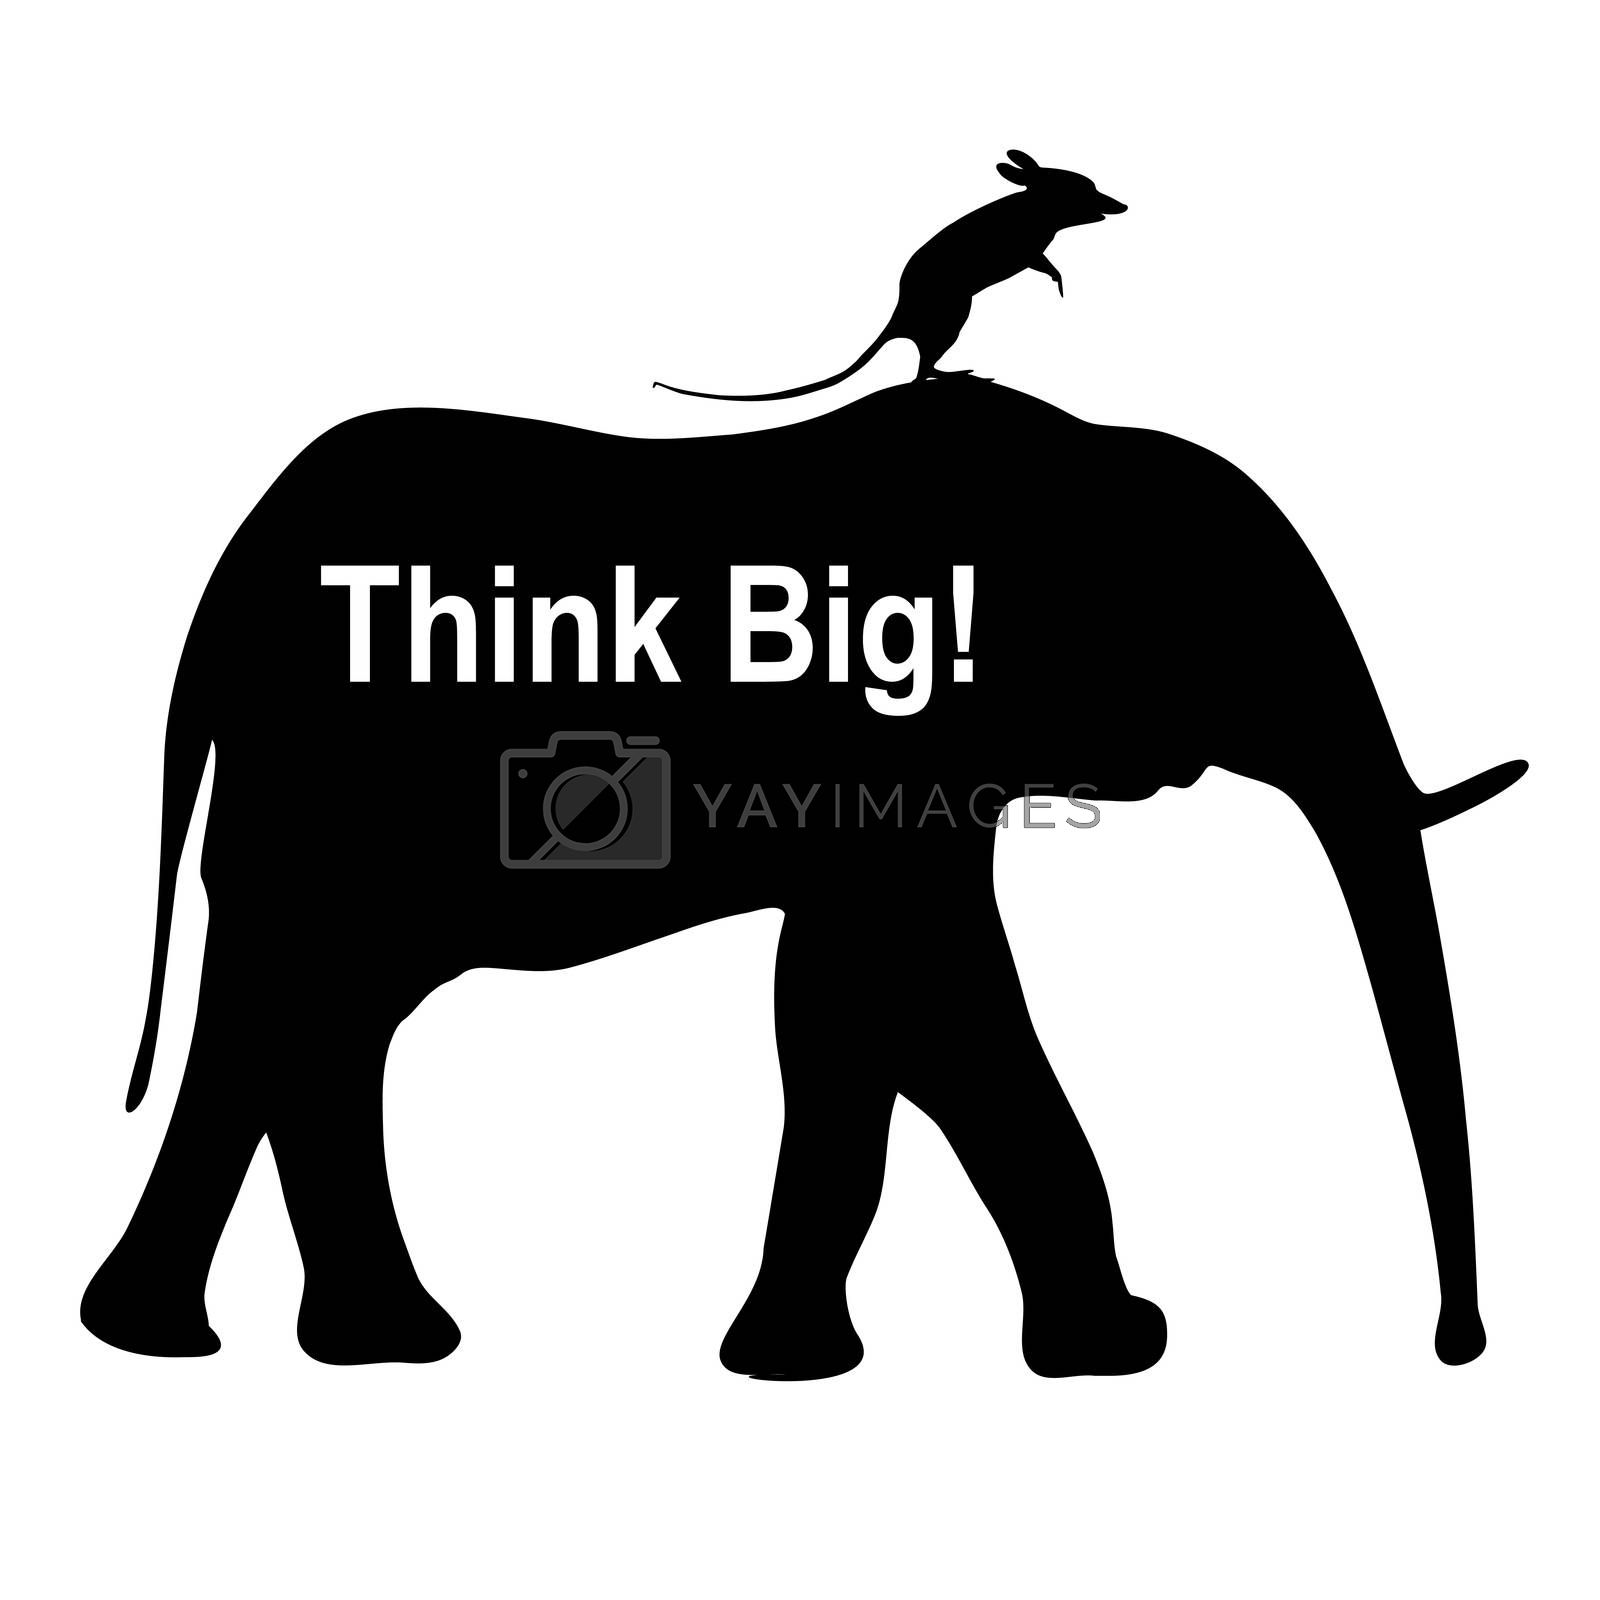 Mouse riding an elephant as business metaphor for imagination and vision